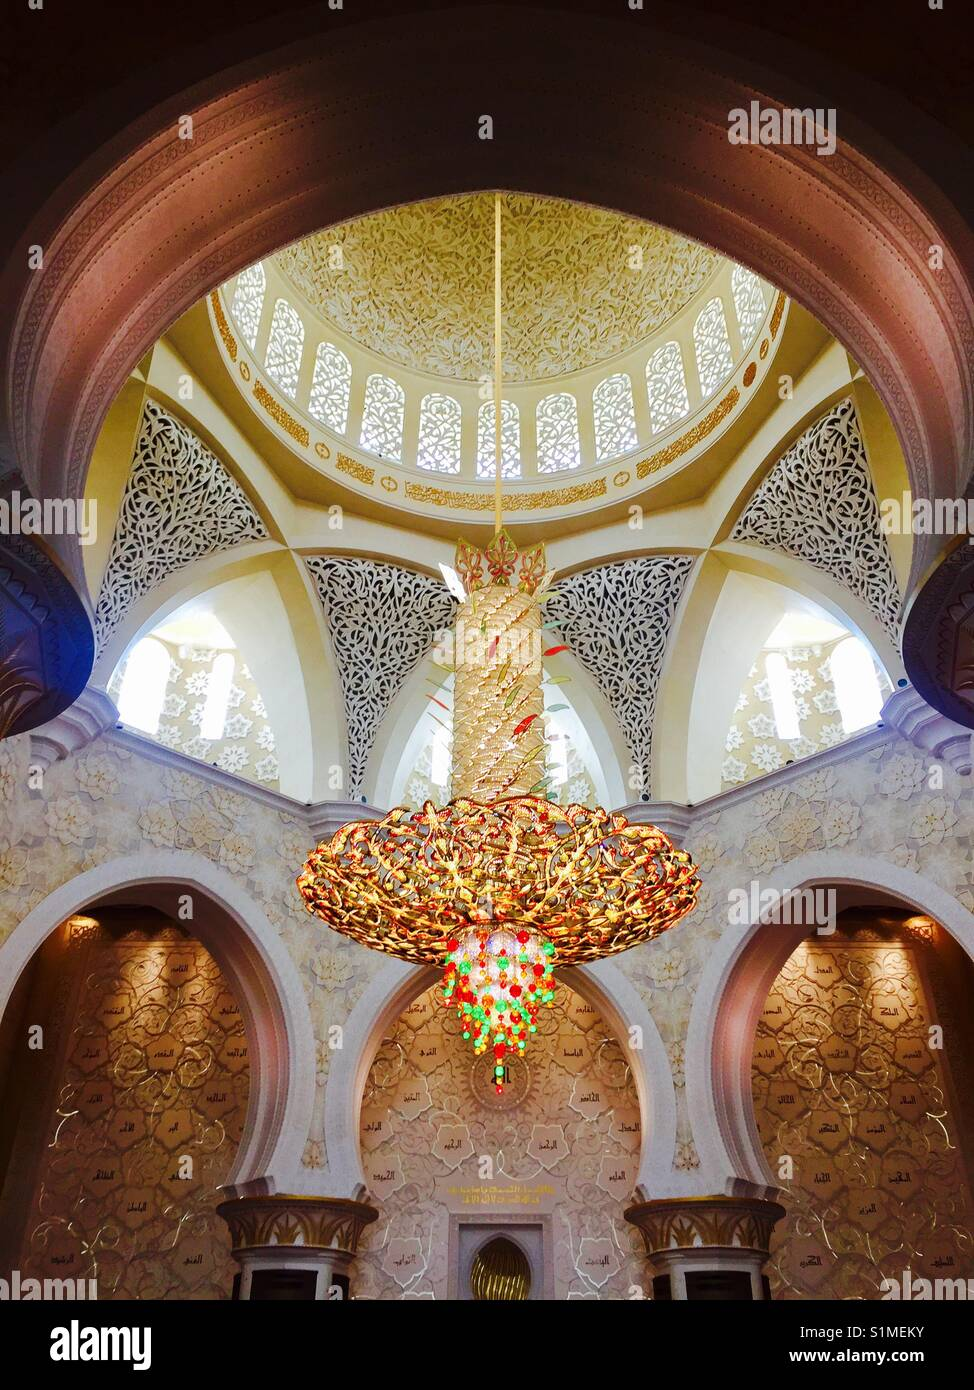 Biggest chandelier in the world installed in sheikh zayad mosque abu biggest chandelier in the world installed in sheikh zayad mosque abu dhabi united arab emirates aloadofball Gallery